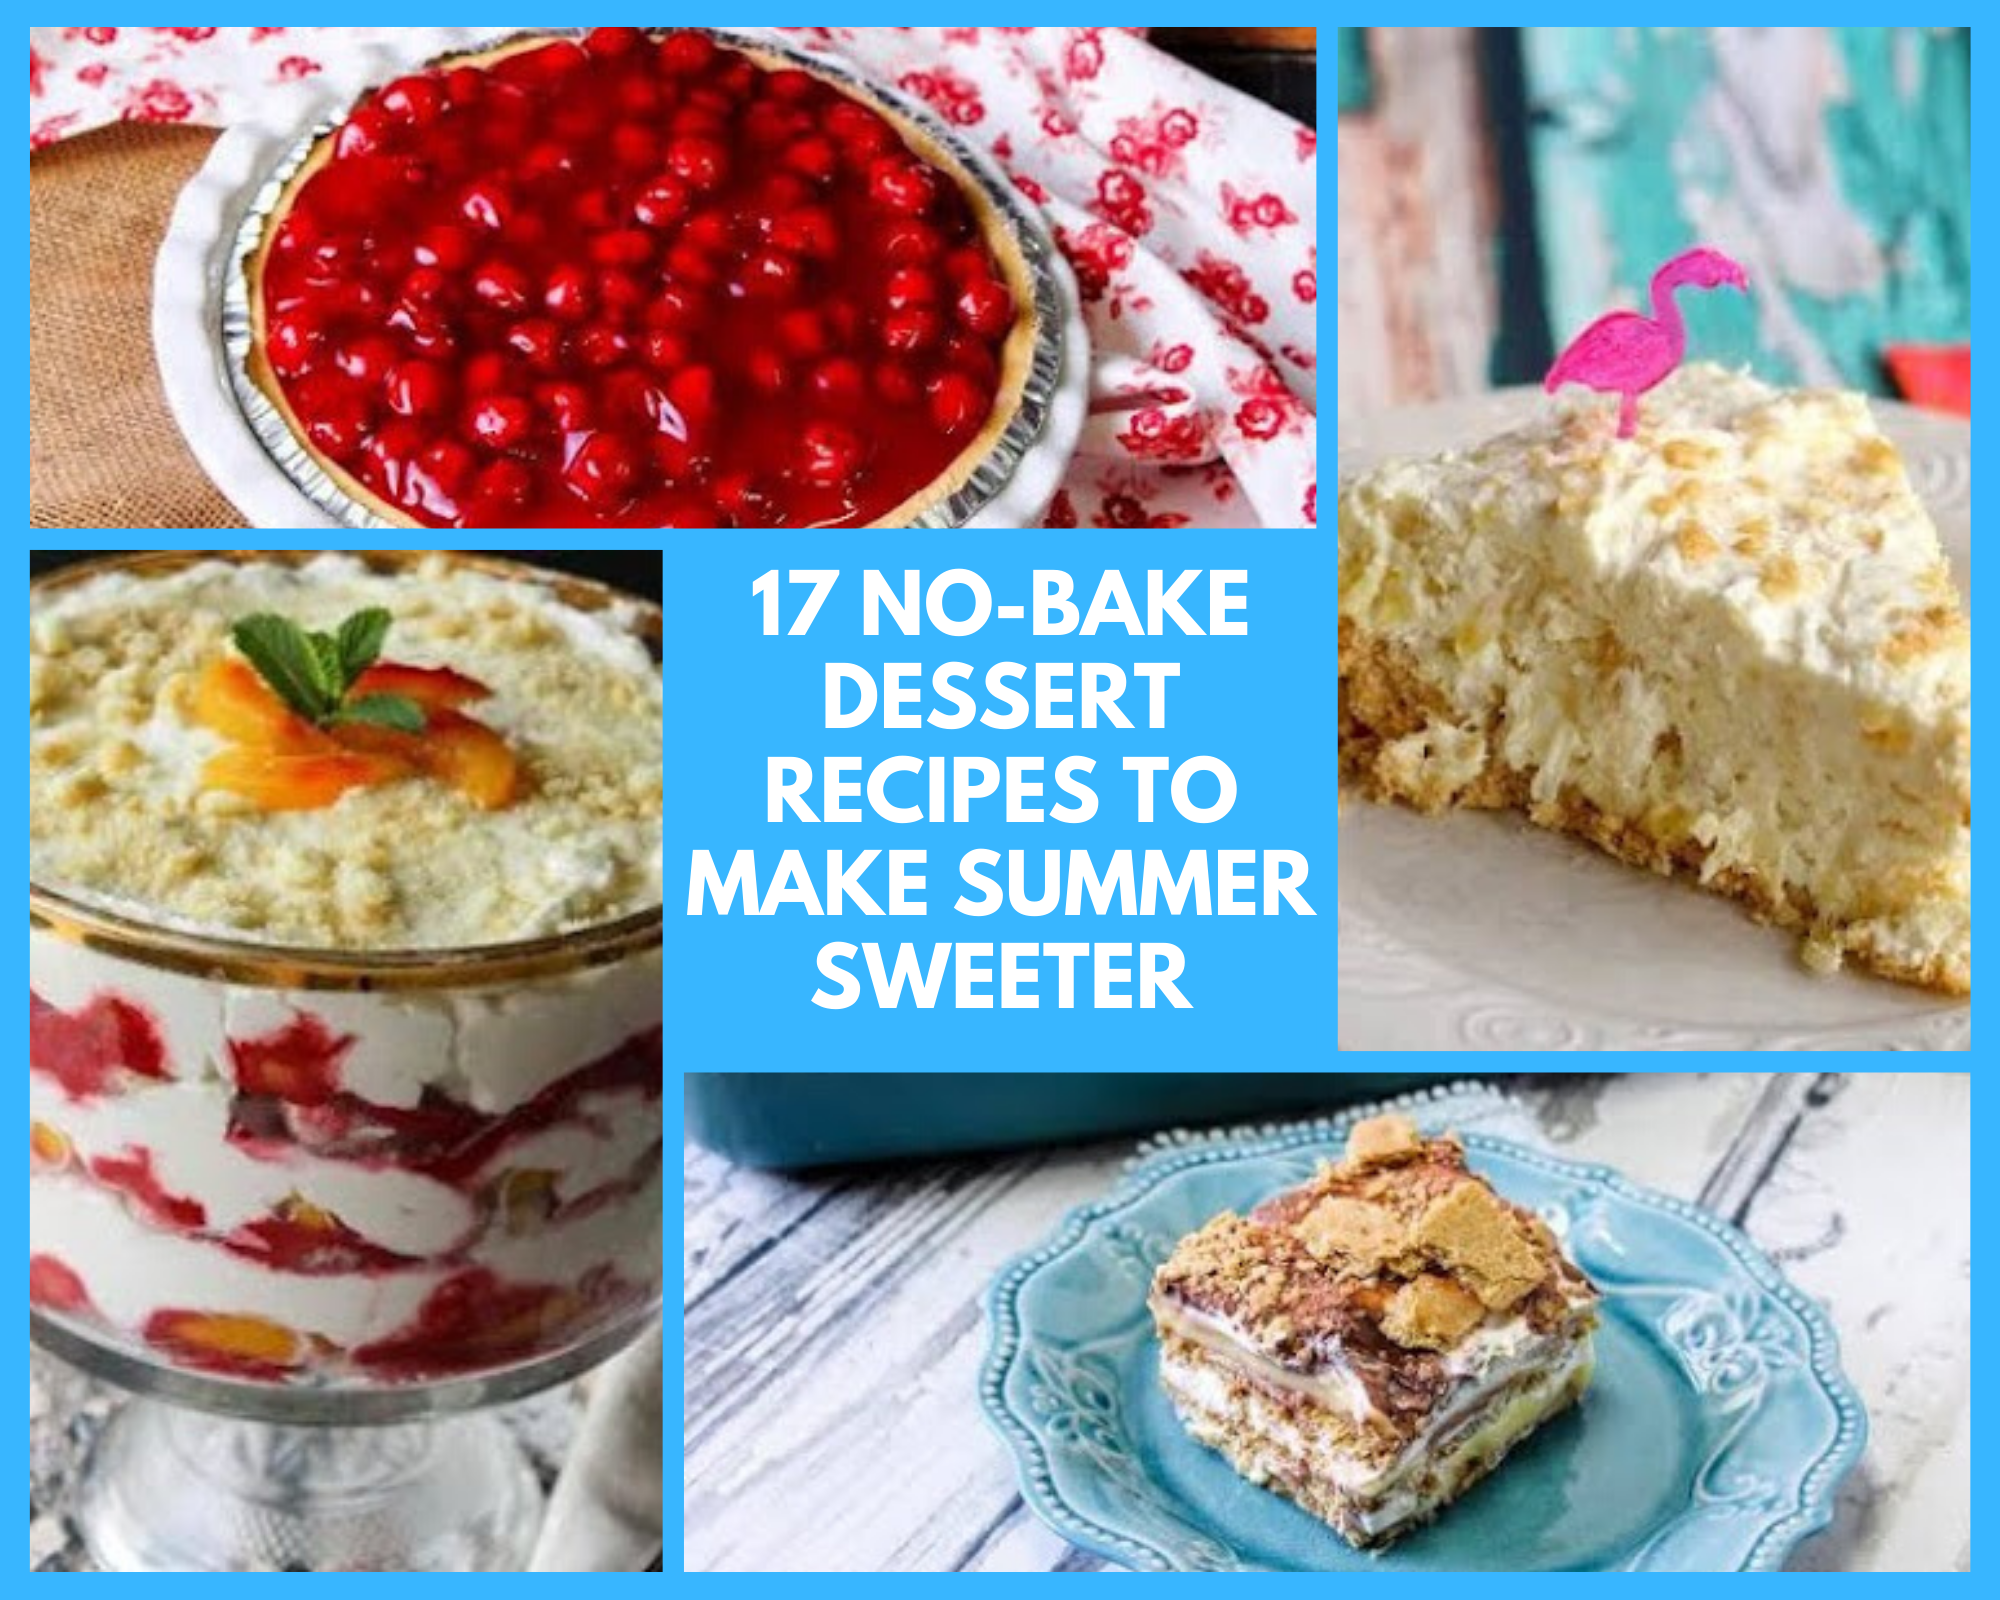 Summer no-bake cheesecake, pie and other desserts